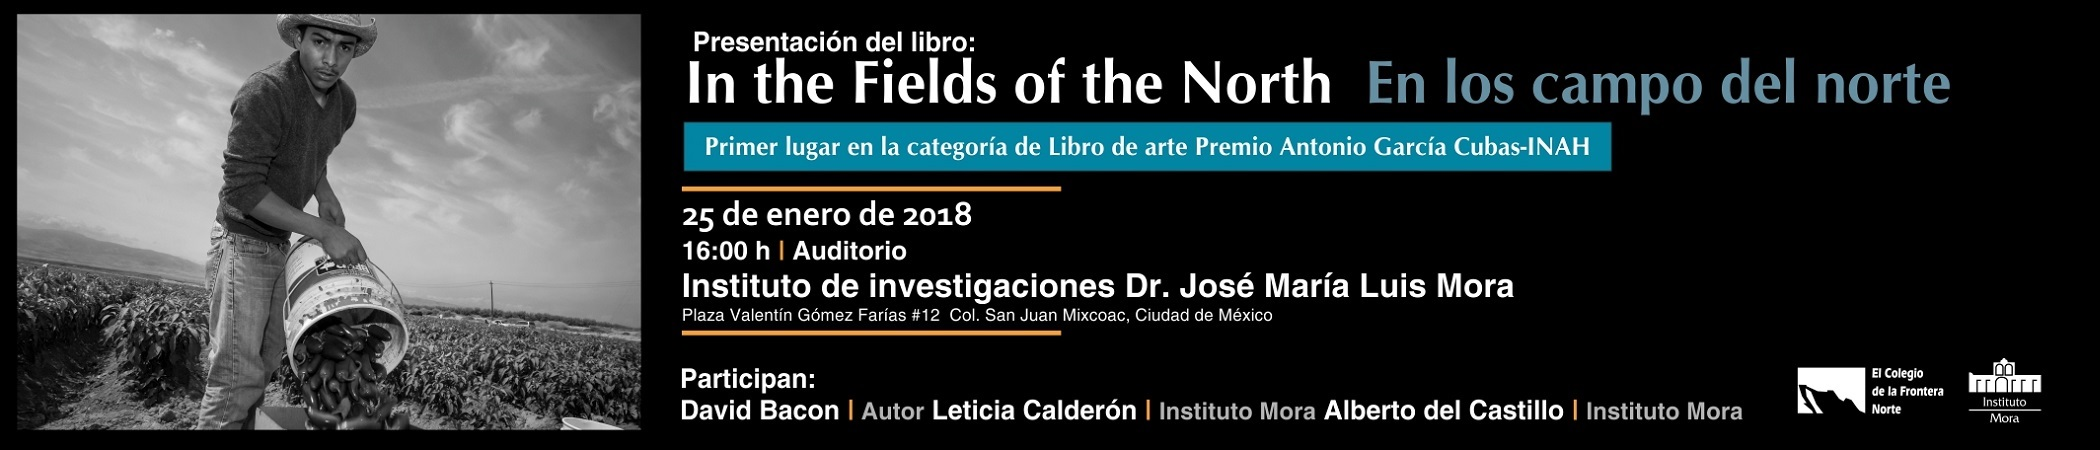 Presentación del libro In the Fields of the North / En los campos del norte